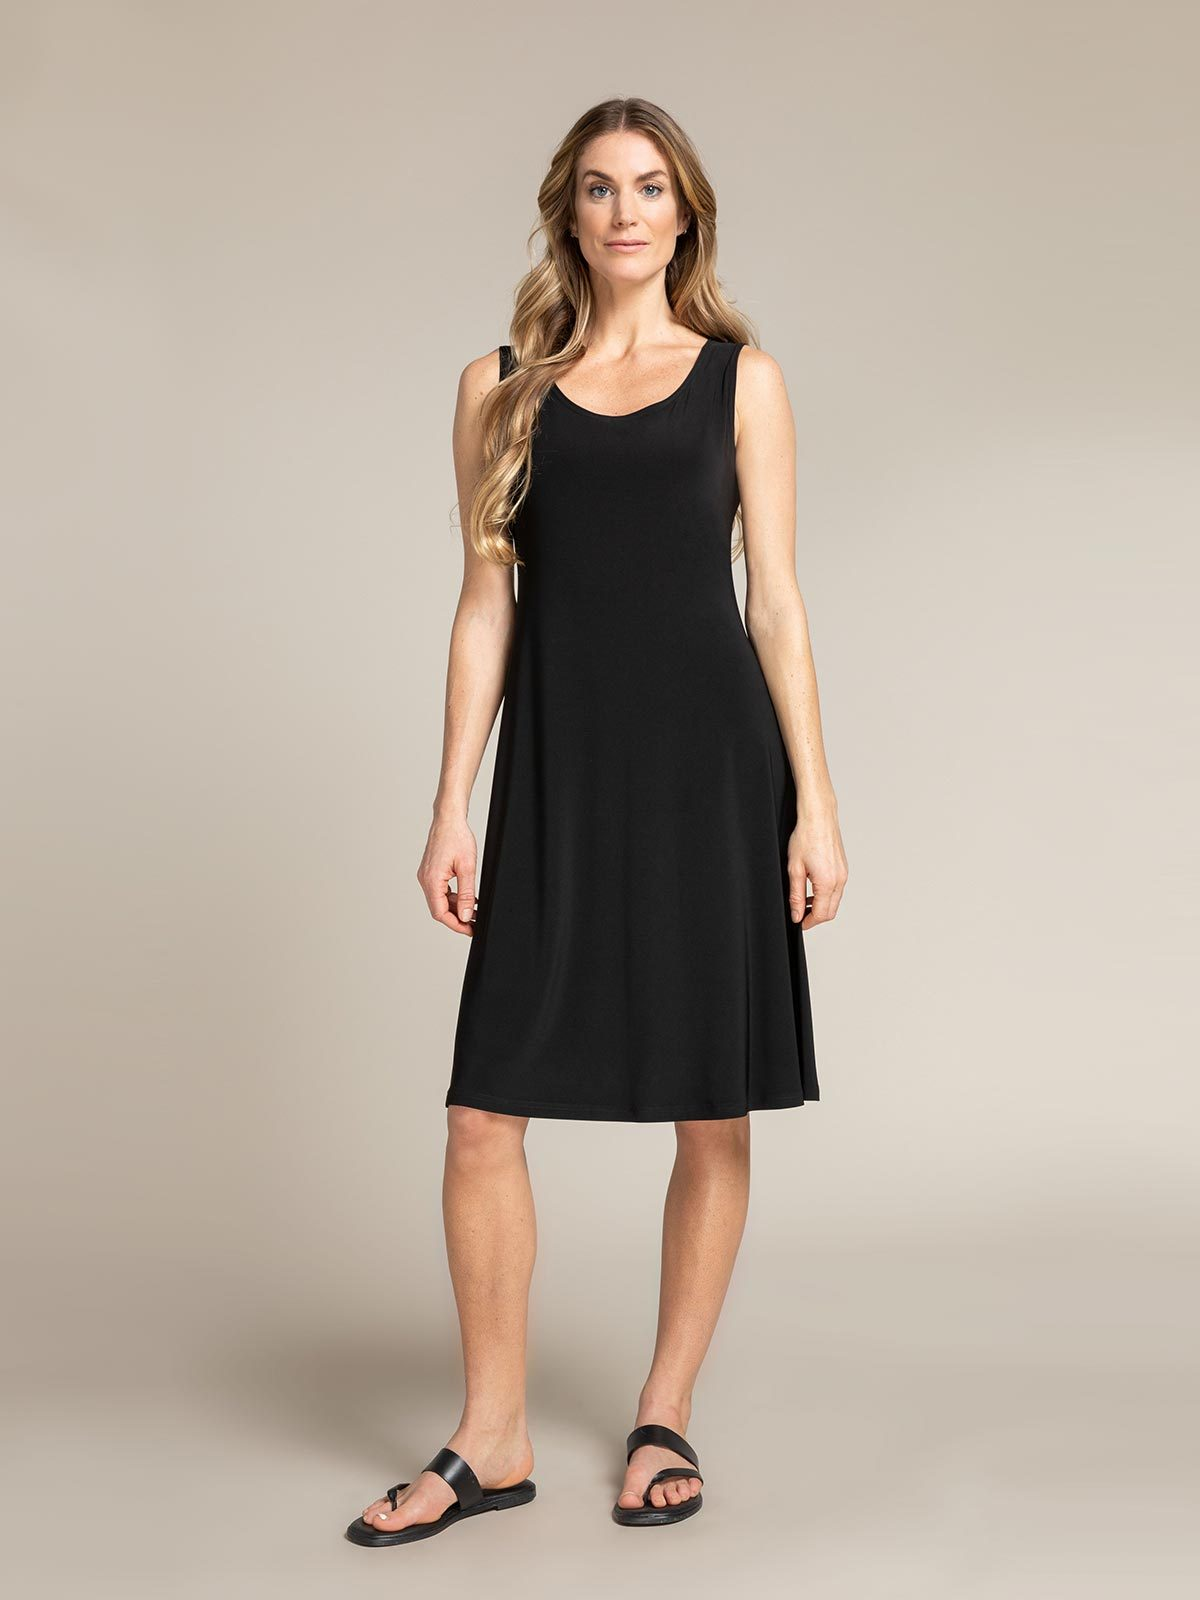 Sympli - Tank Dress Short - Black